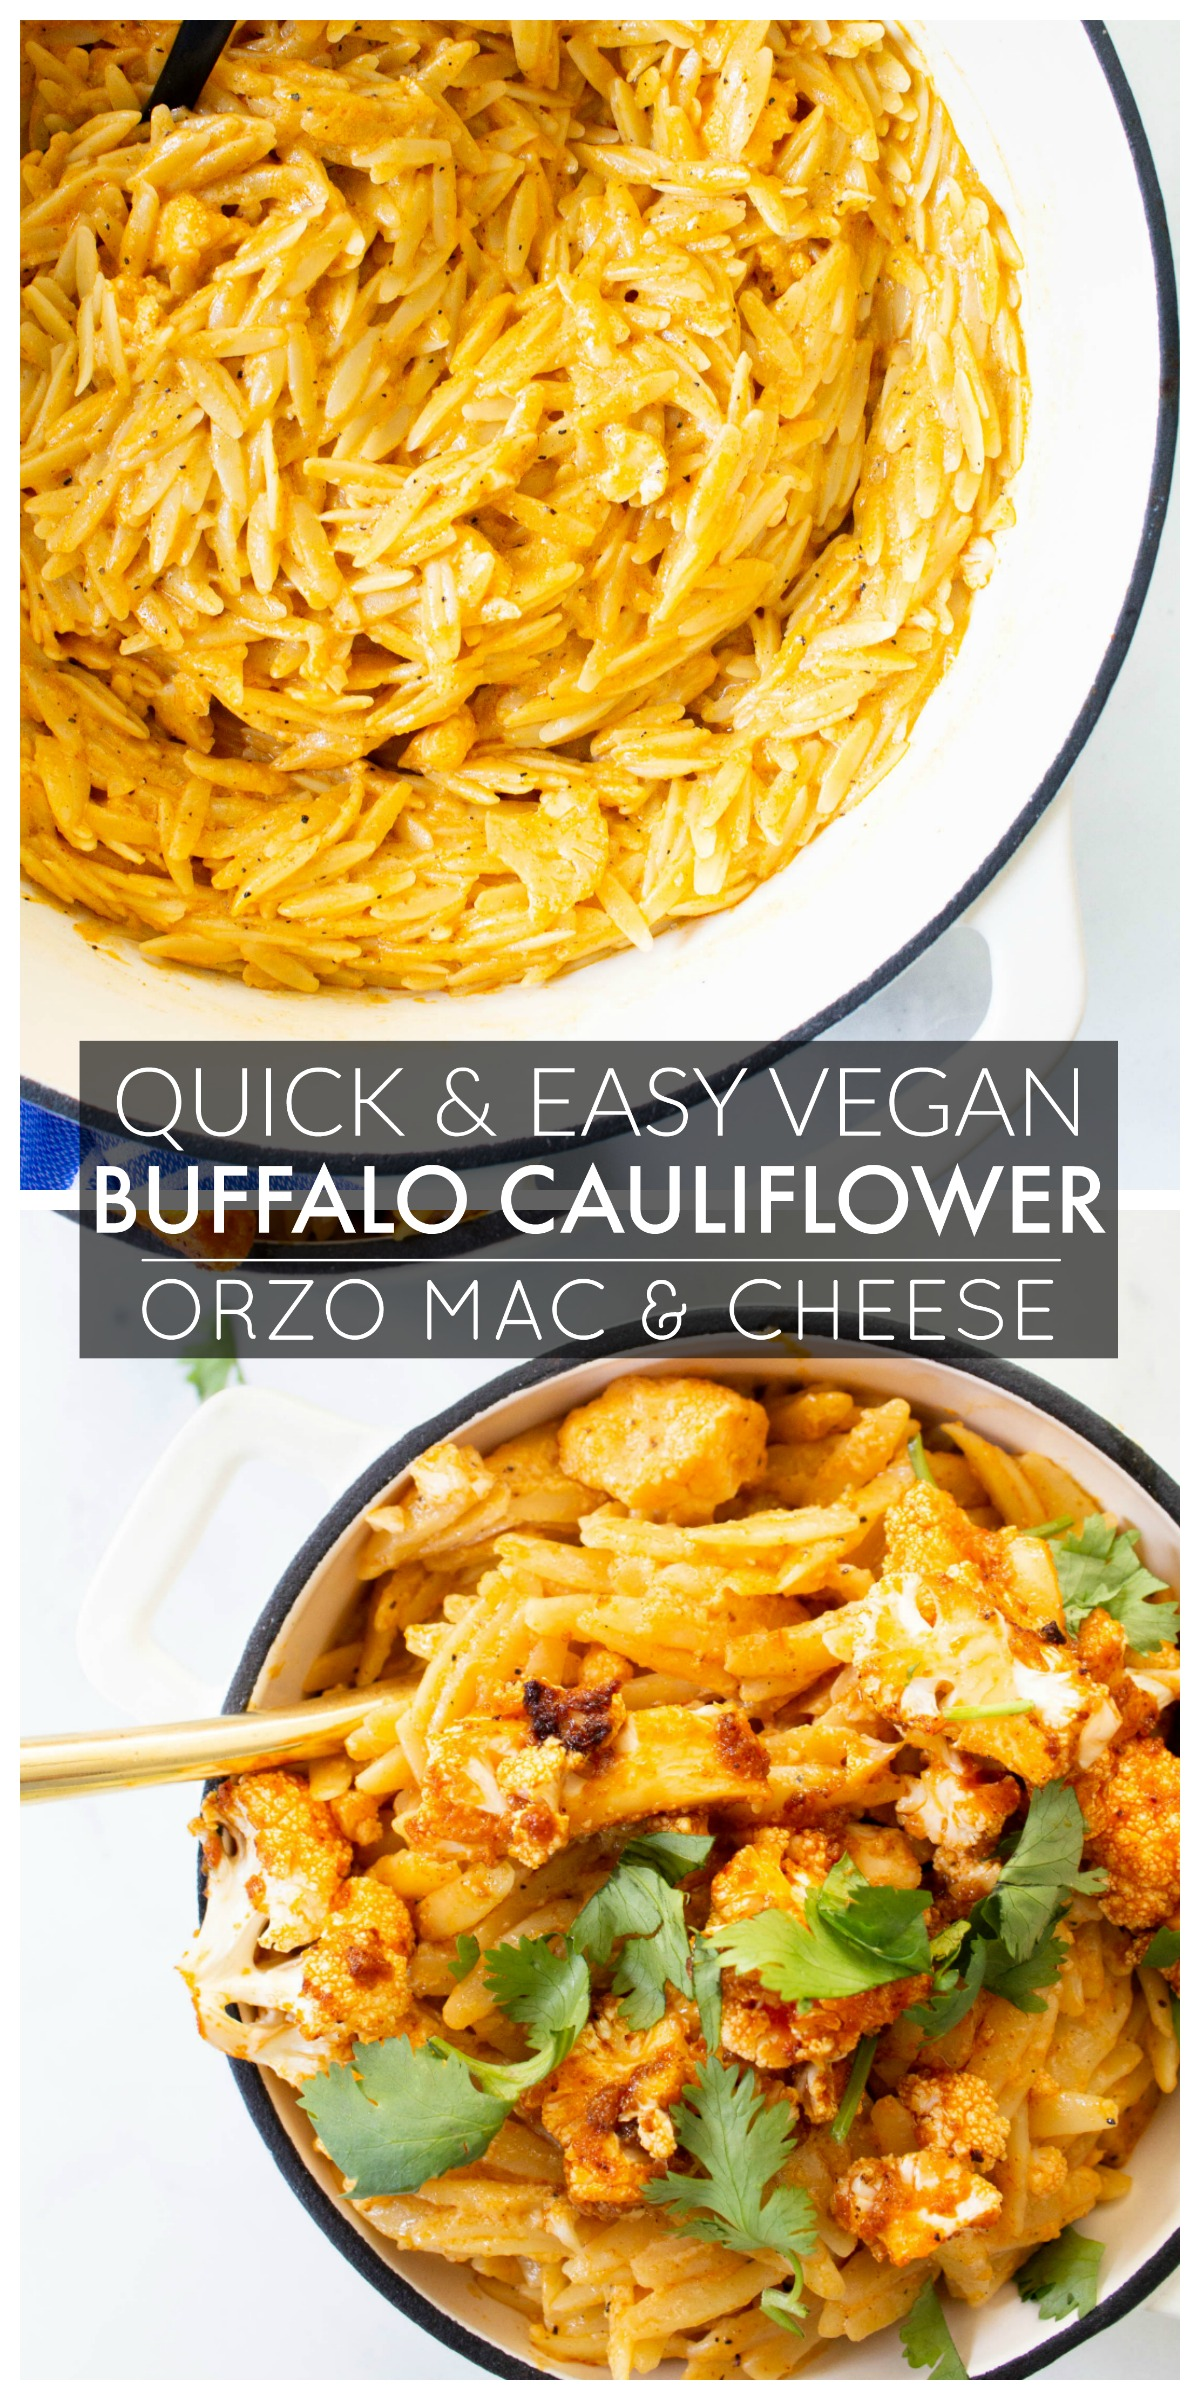 This Vegan Buffalo Cauliflower Orzo Mac and Cheese is creamy, dreamy comfort food. The perfect amount of spice to kick up this classic recipe | ThisSavoryVegan.com #thissavoryvegan #veganmacandcheese #buffalomacandcheese